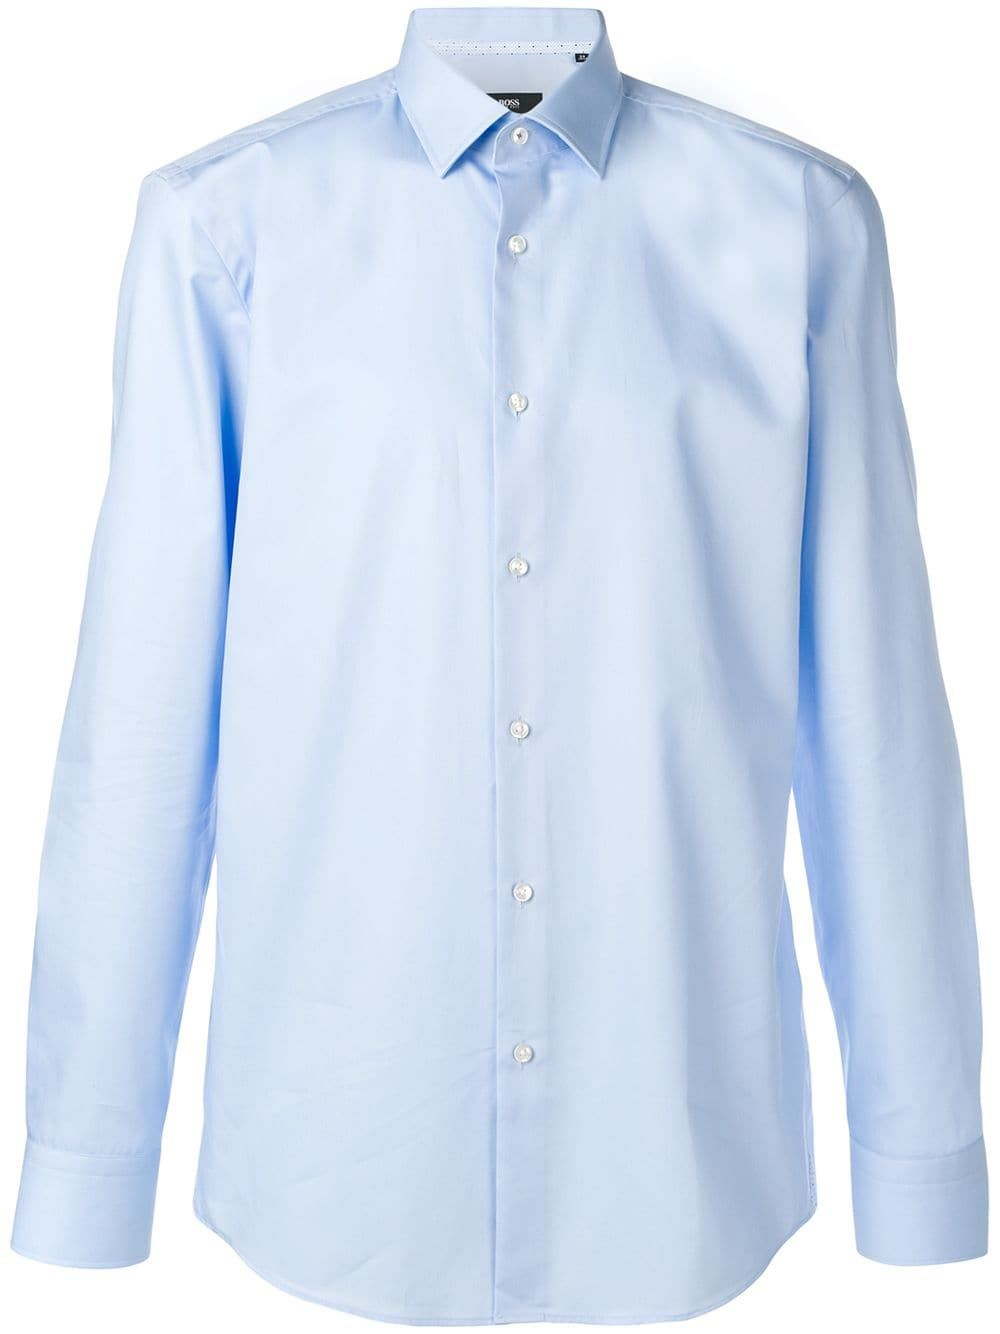 b8ebc034 BOSS HUGO BOSS BOSS HUGO BOSS SLIM-FIT FORMAL SHIRT - BLUE. #bosshugoboss  #cloth